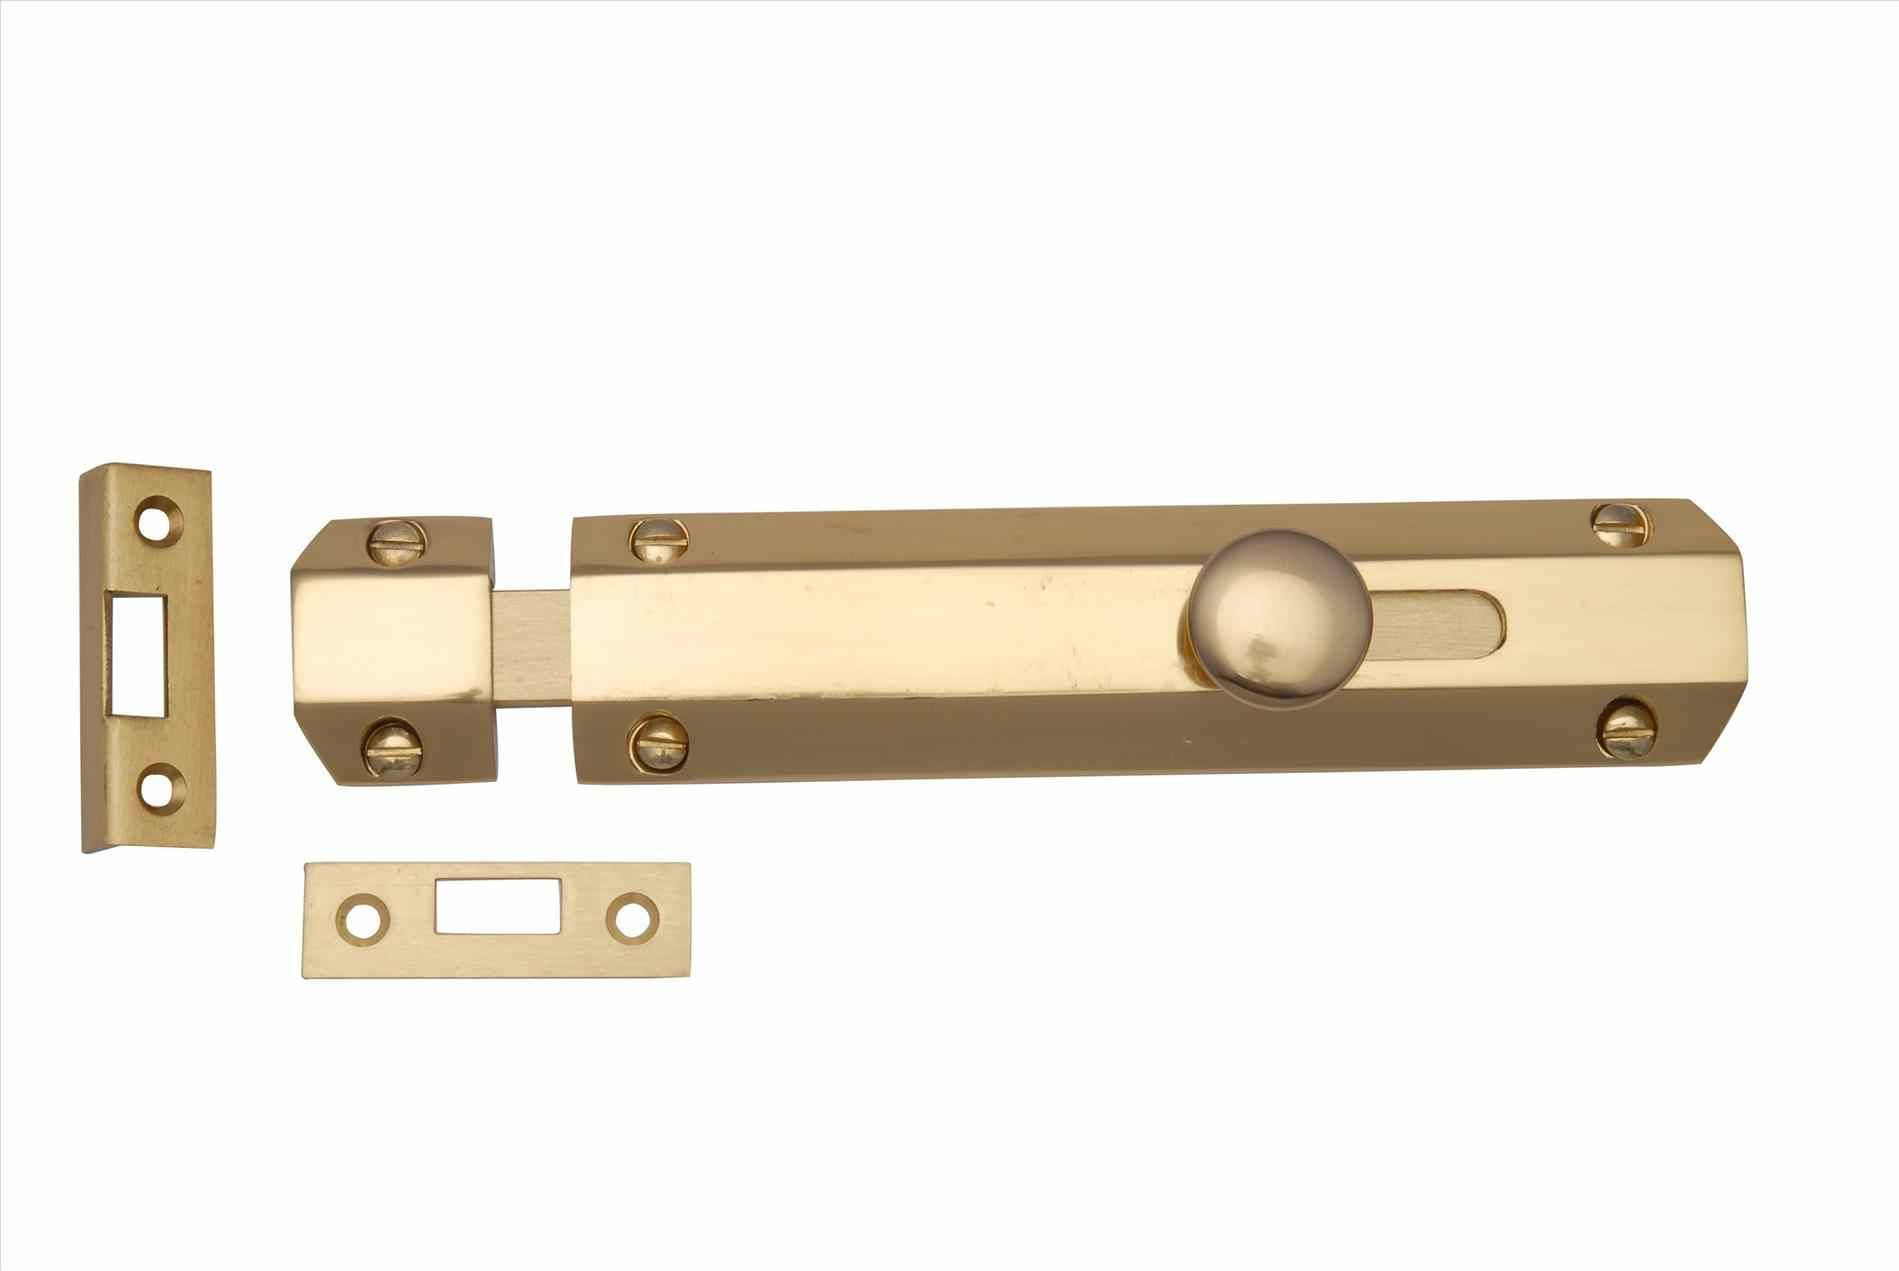 door lock types. Door Latch Types Bolt U Heavy Duty Polished Chrome Mm Straight For Modern Different Lock